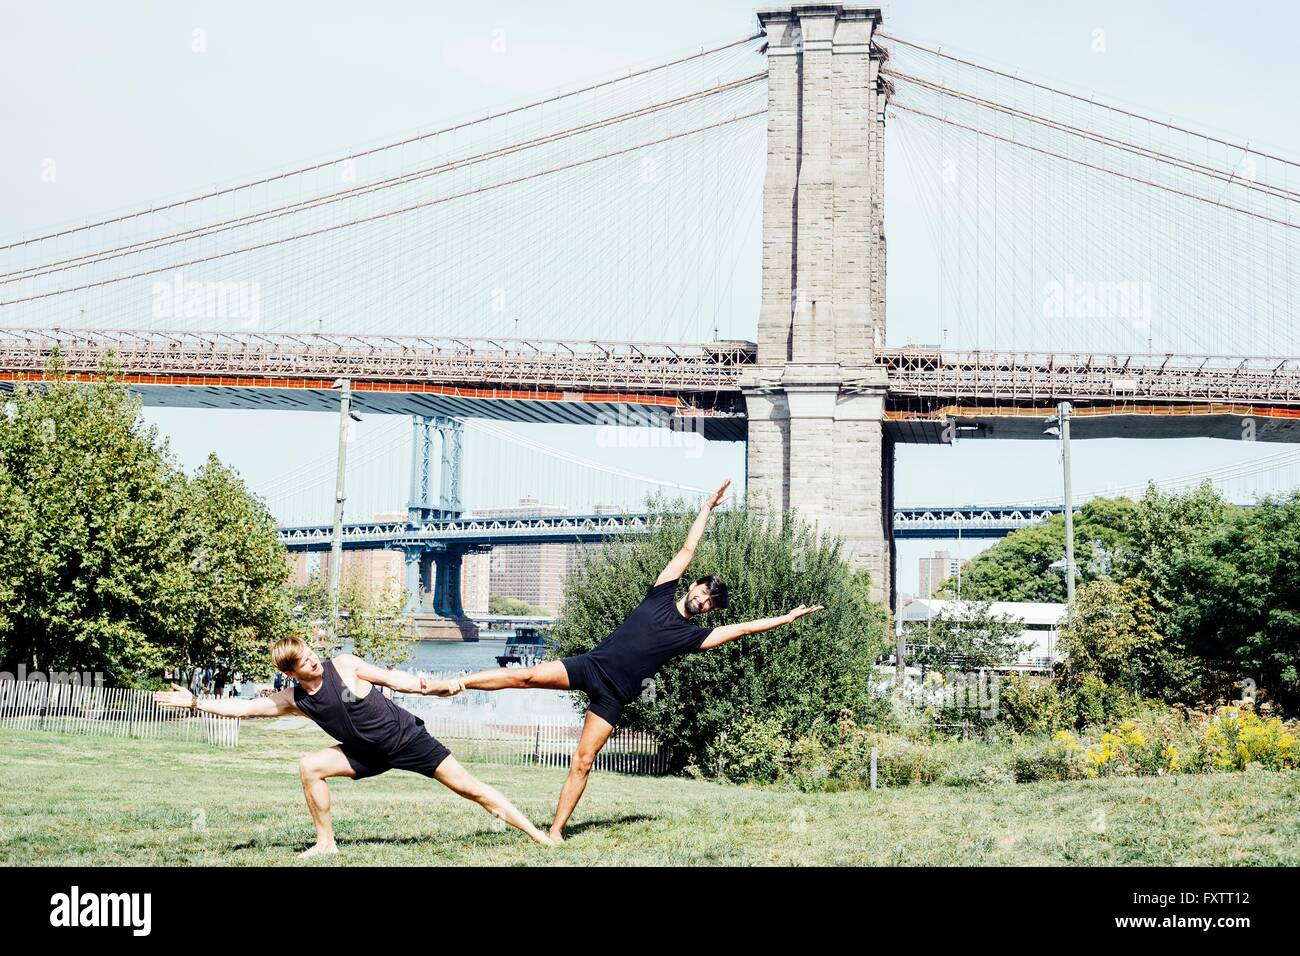 Two men leaning sideways in yoga foot hold position in front of Brooklyn Bridge, New York, USA - Stock Image